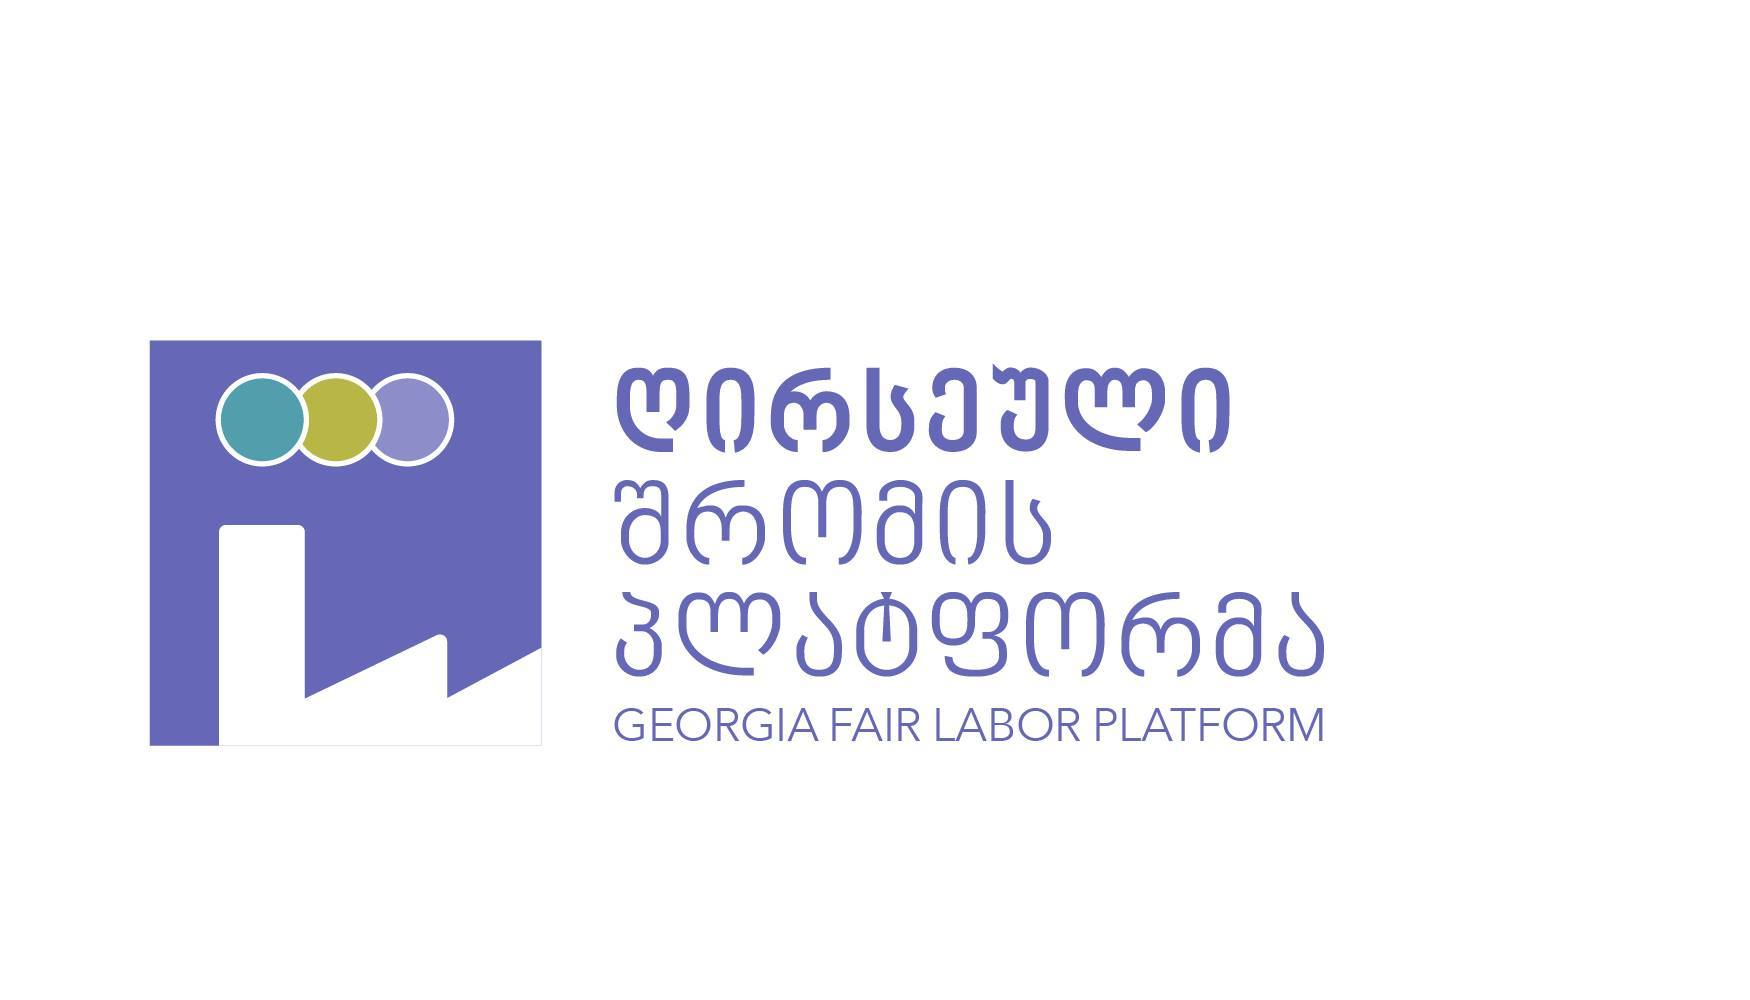 Fair Labor Platform: Death of two railway employees is a result of weak labor safety policy